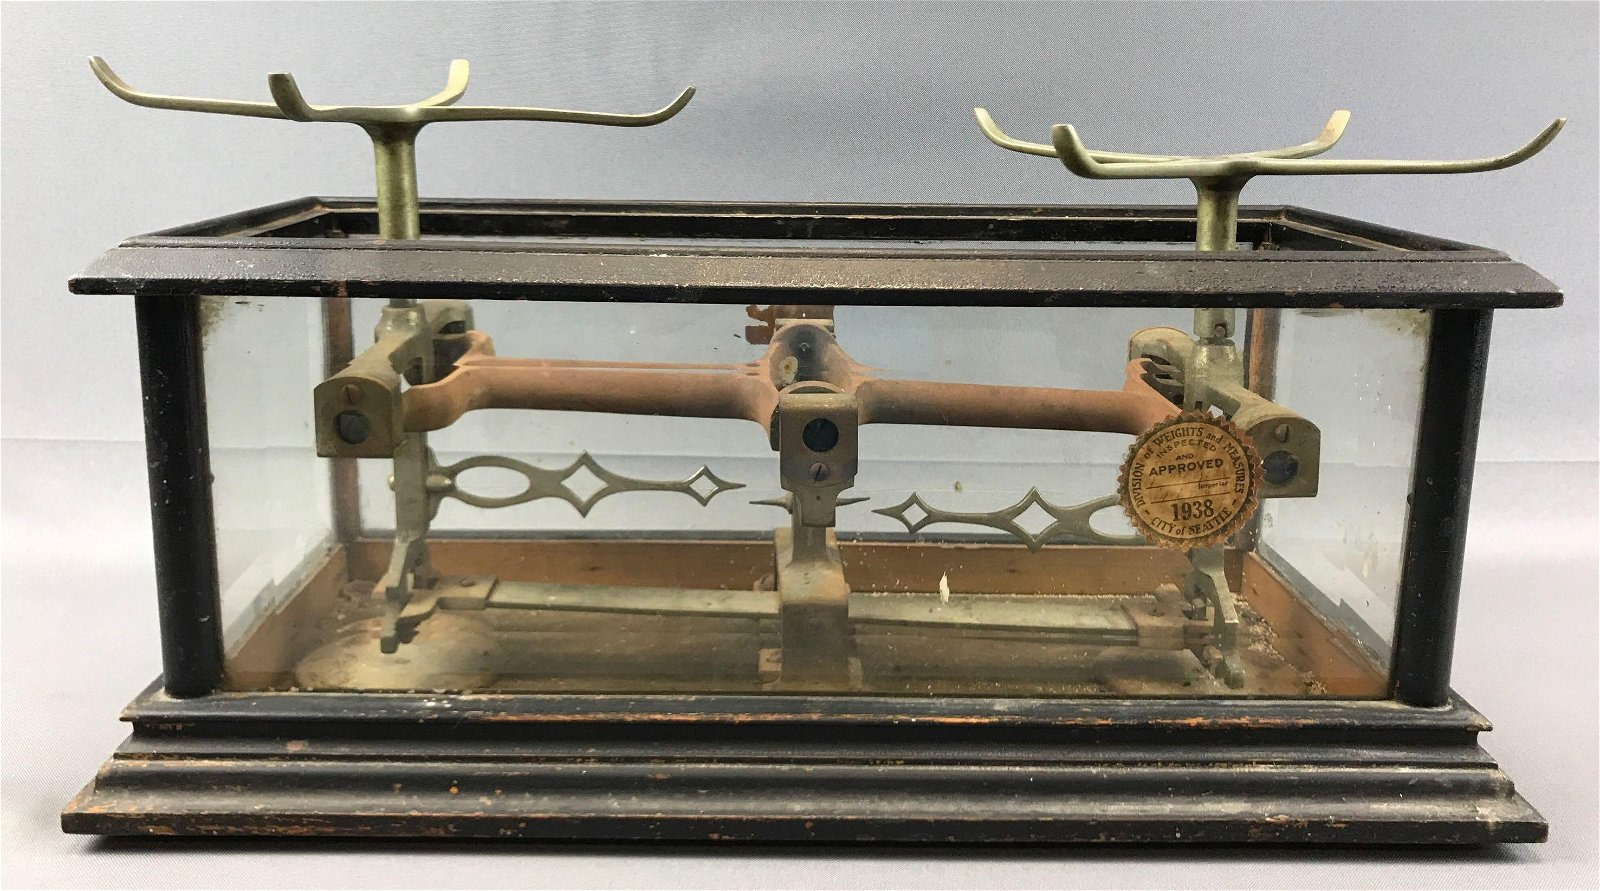 Vintage Scale in Glass Case - Inspection Sticker dated